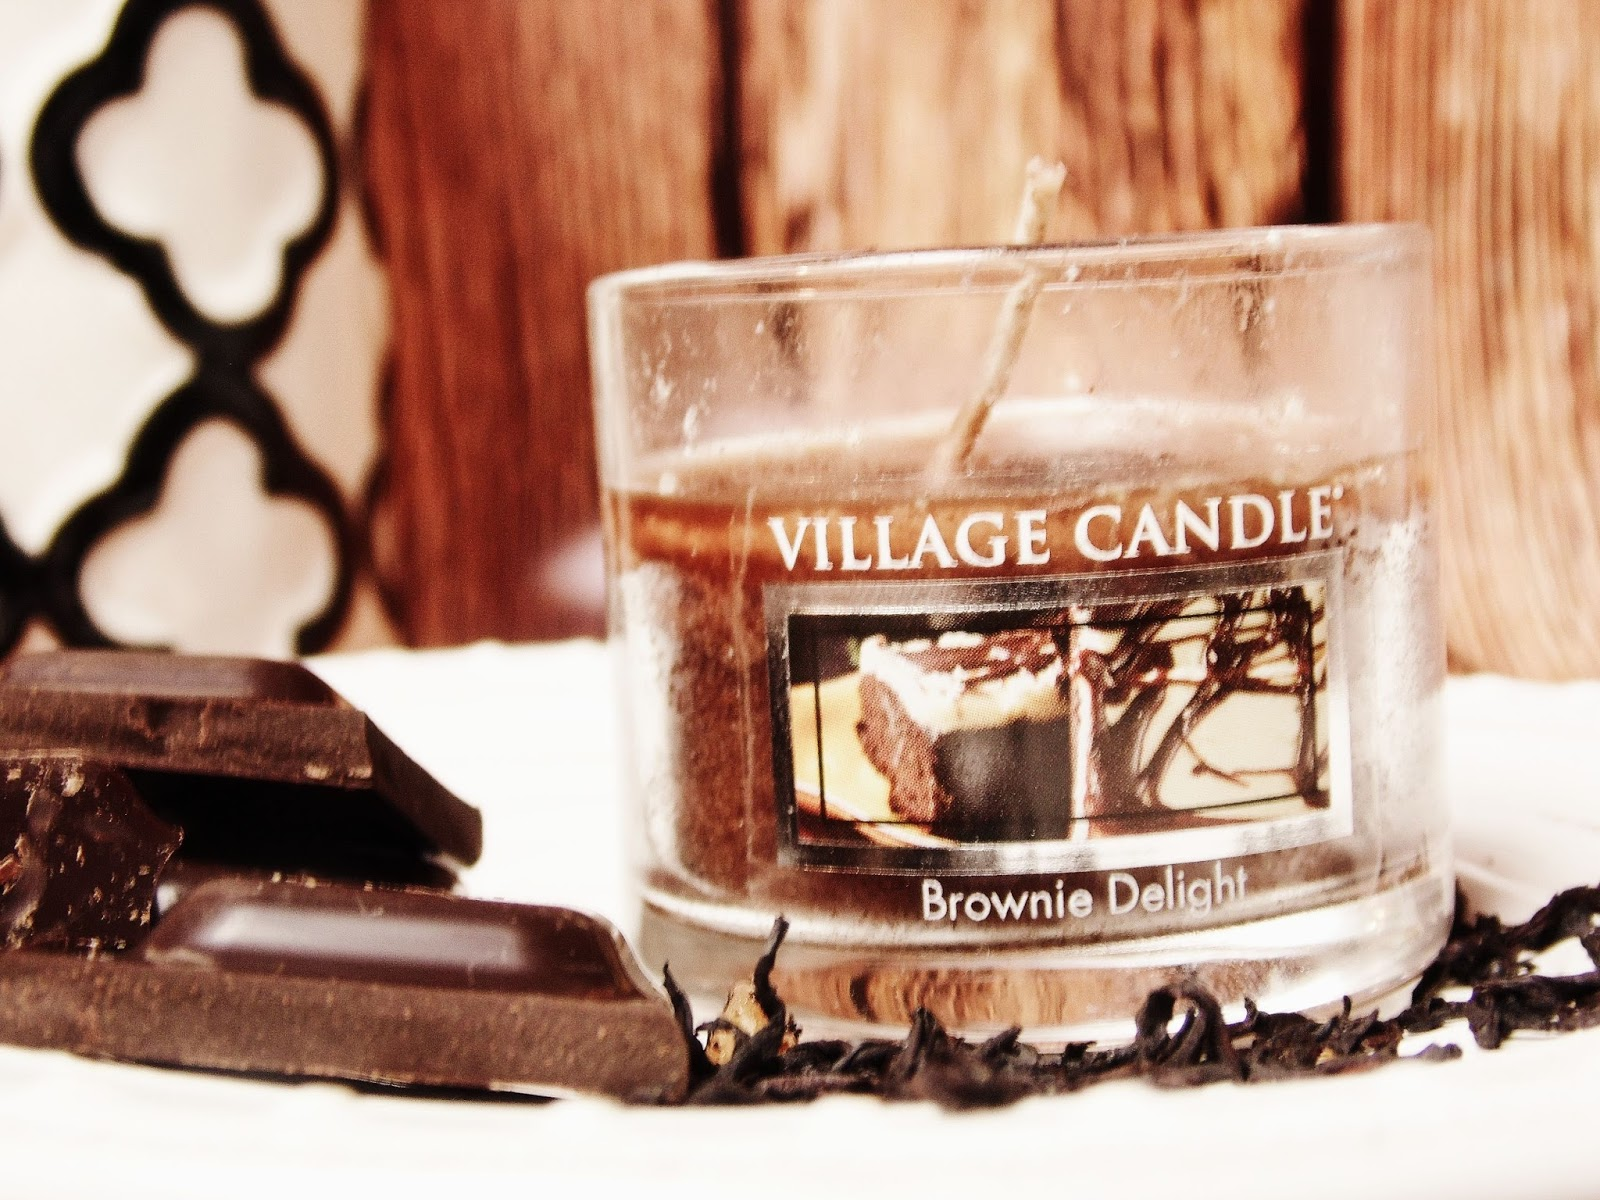 Brownie Delight Village Candle Recenzja